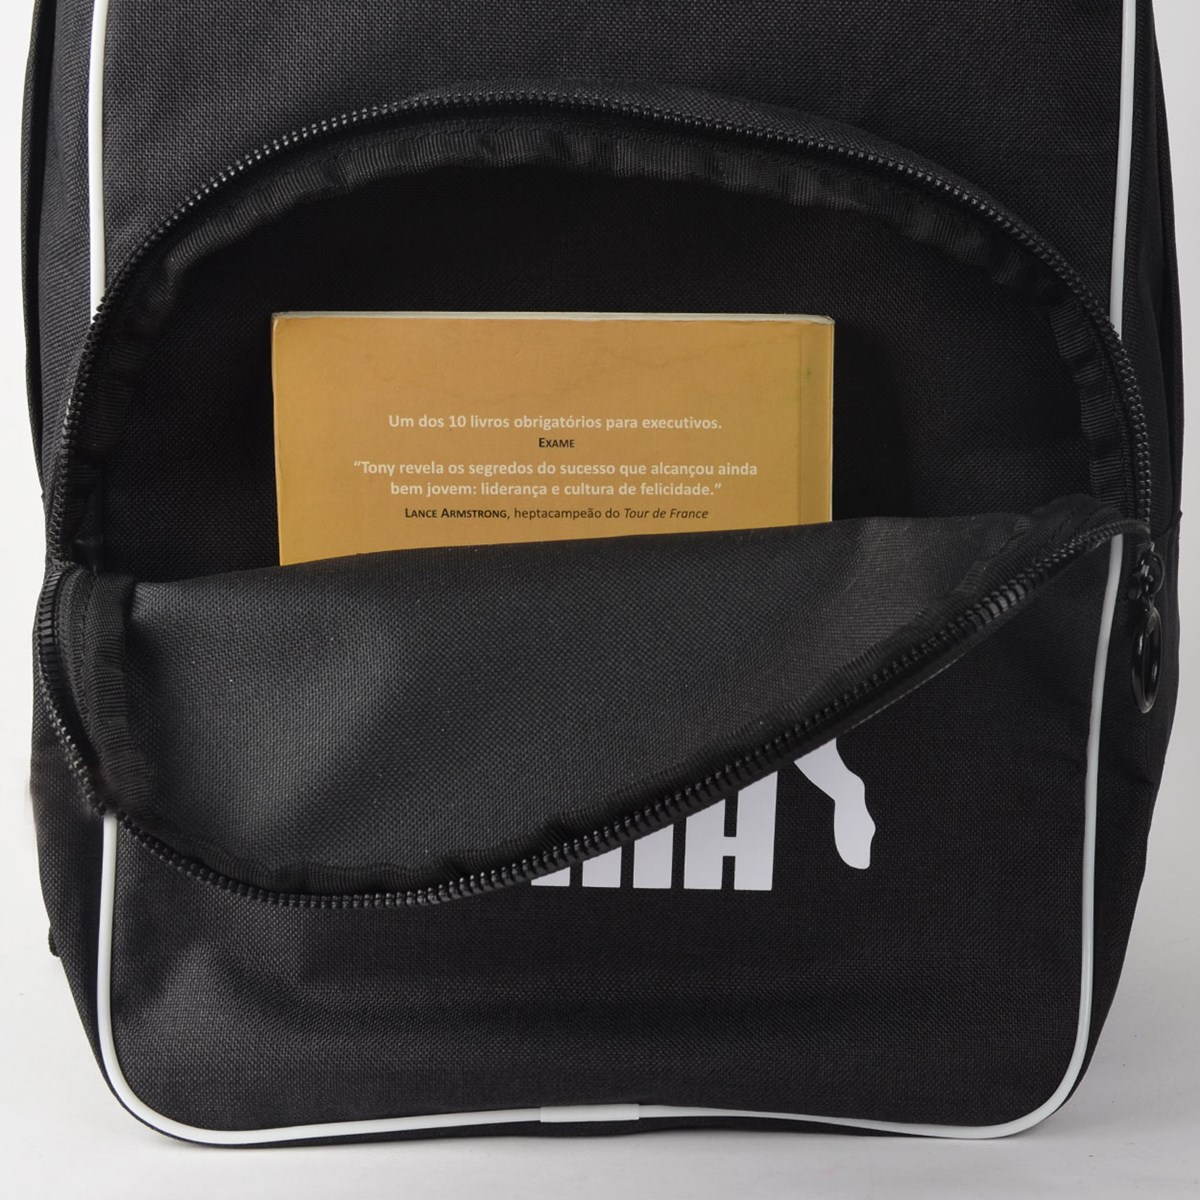 Mochila Puma Originals BP Retro Woven Preto 07665201